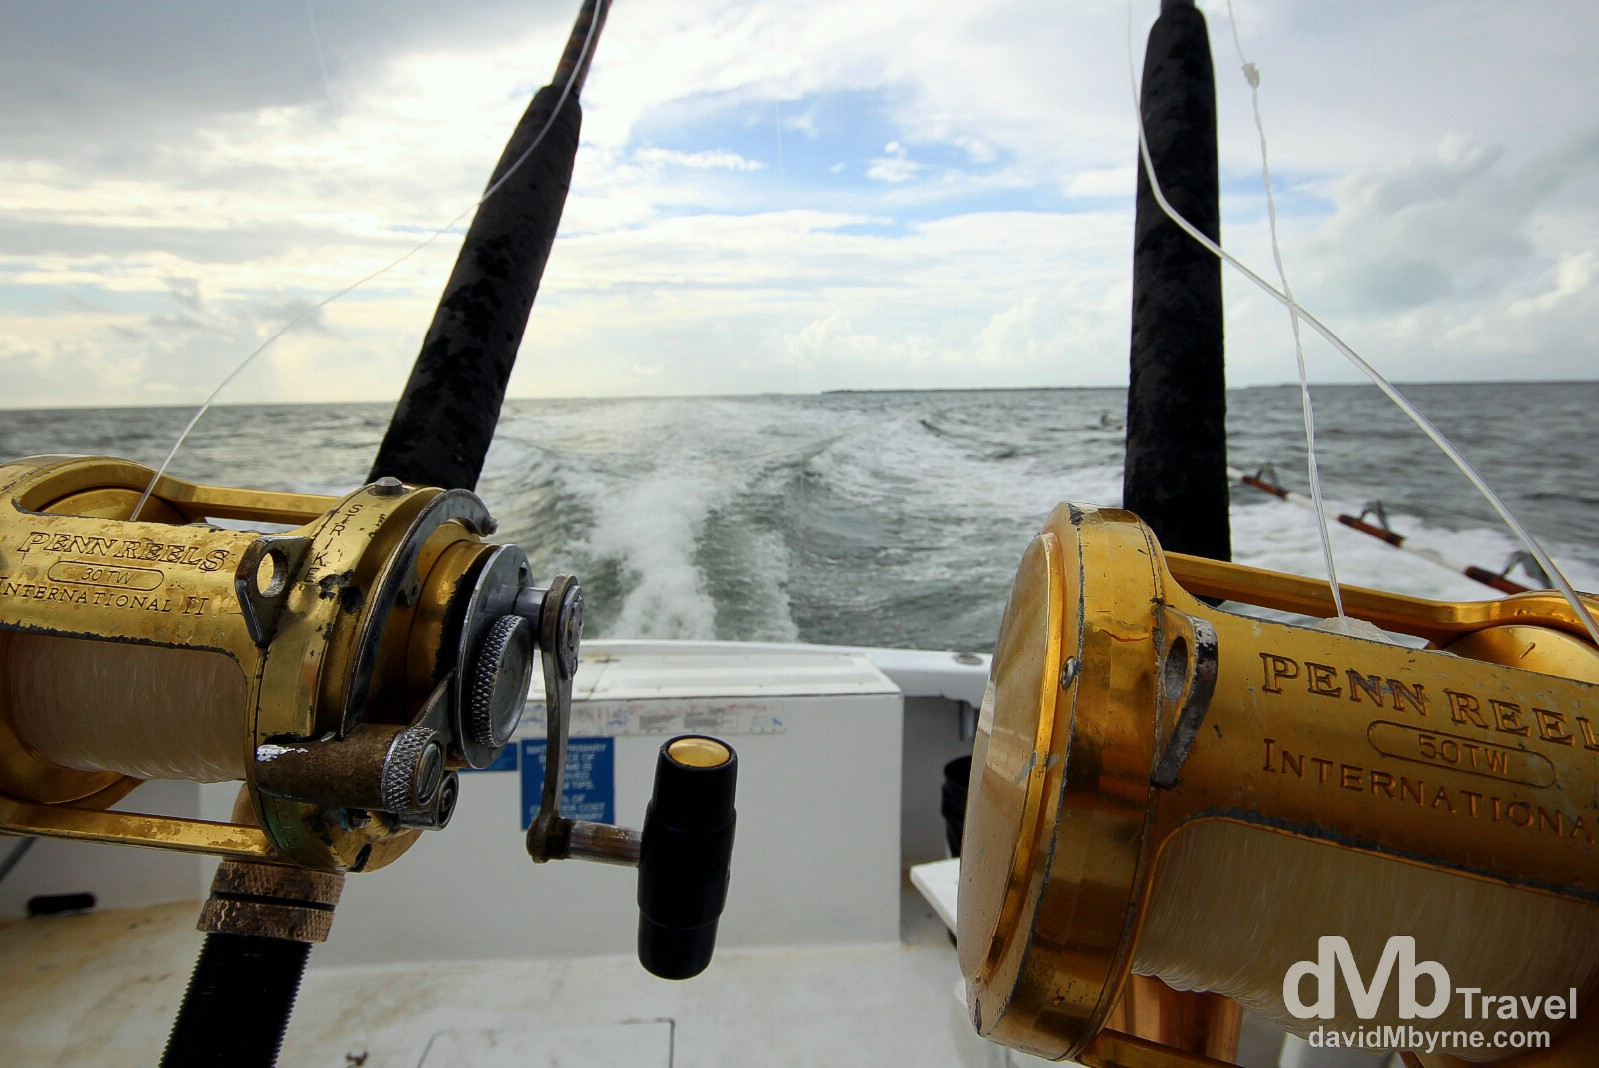 Fishing off the Florida Keys offshore of Key West, Florida, USA. July 6th 2013.